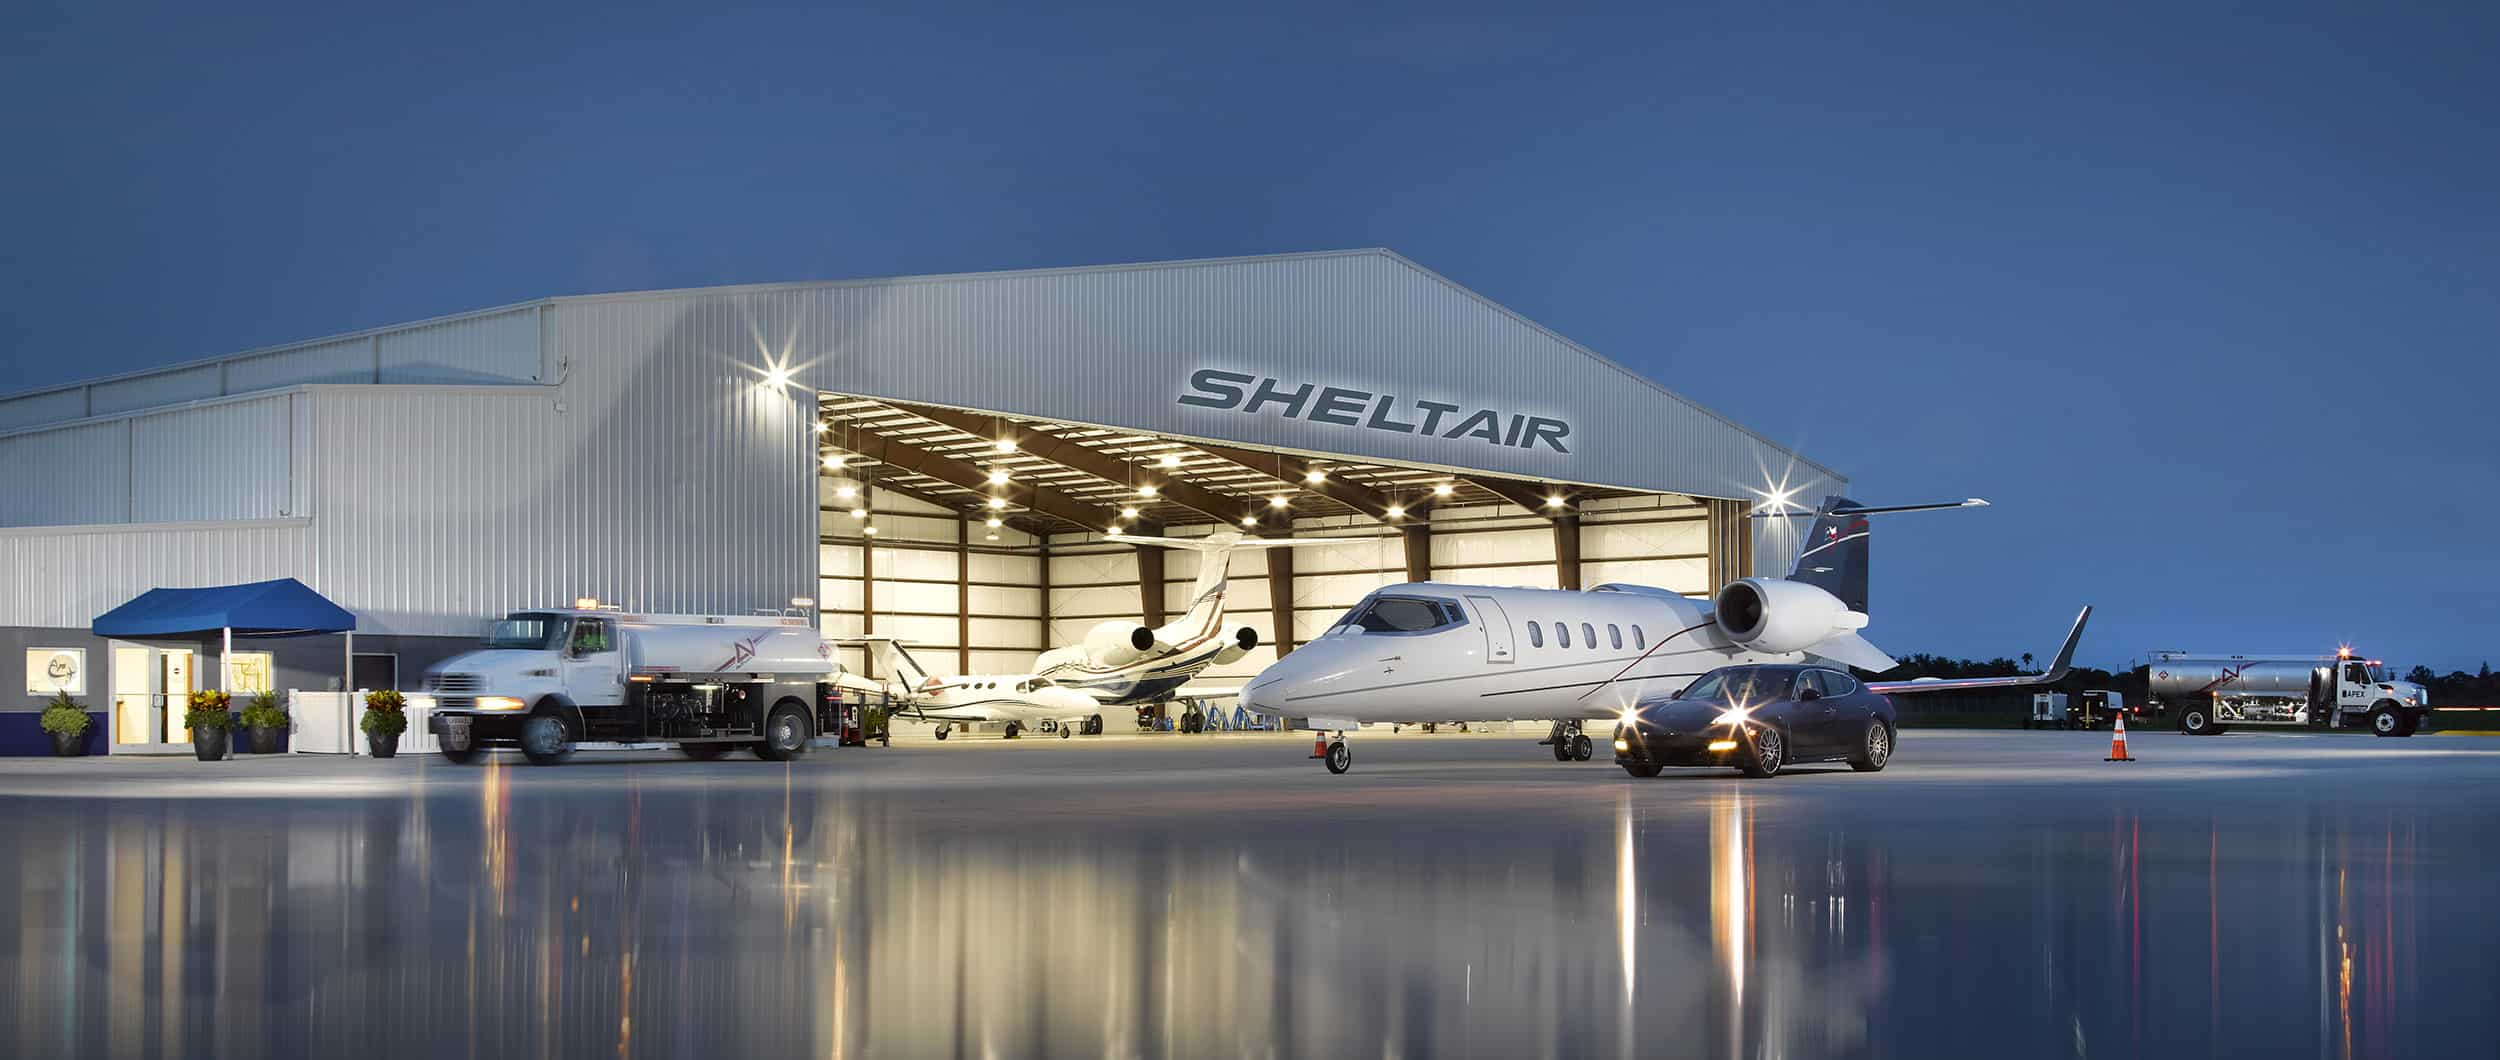 Sheltair MLB - Melbourne International Airport